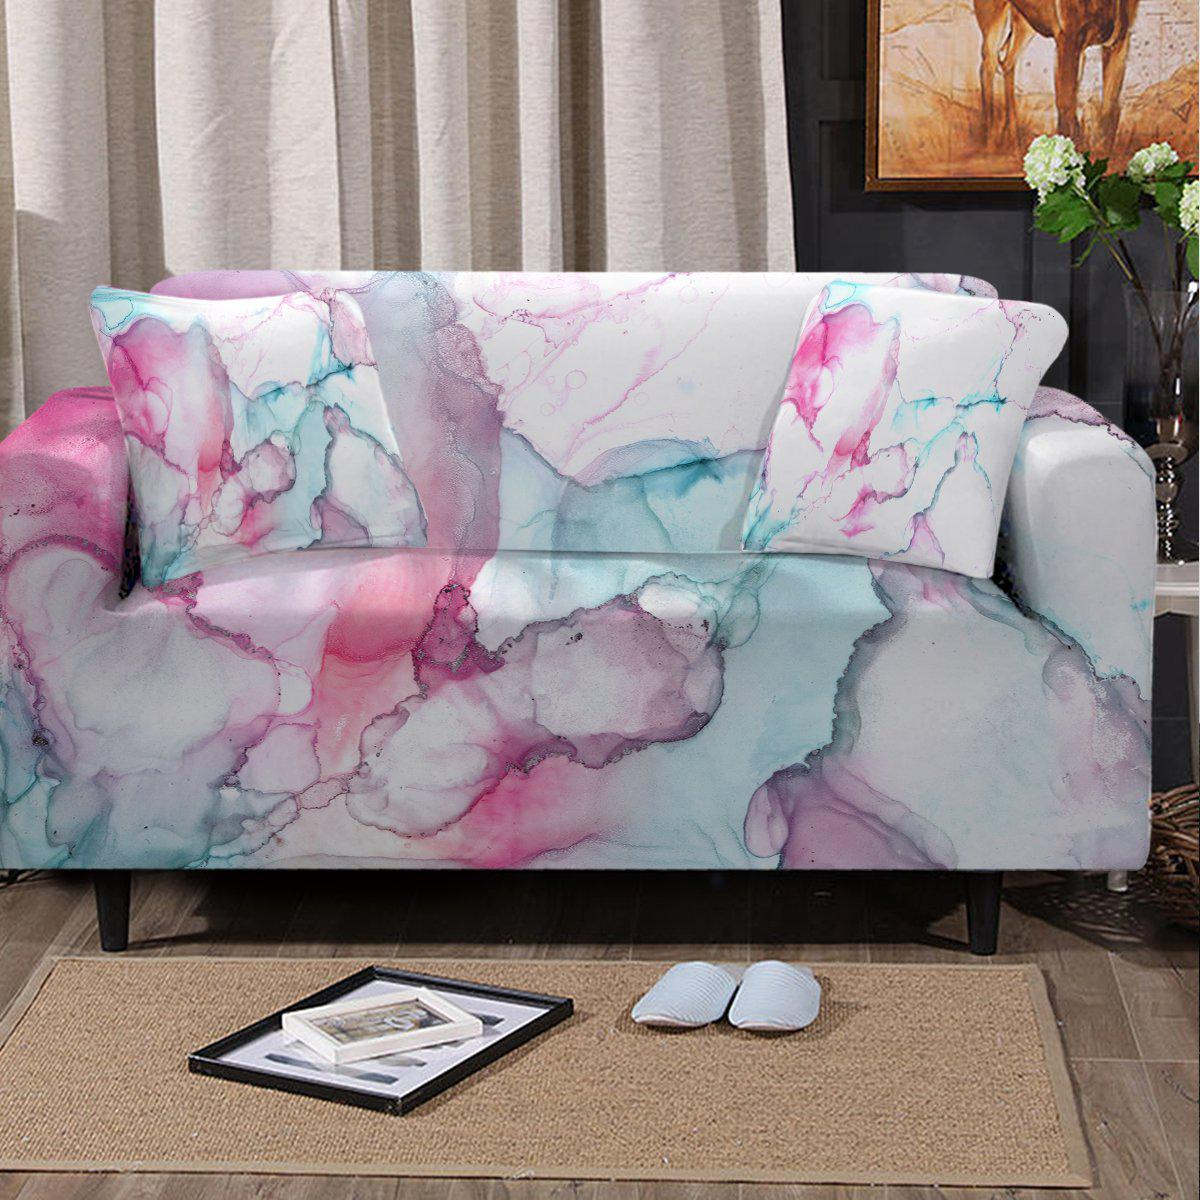 Sofa Slipcover-Waikiki Couch Cover-Coastal Passion